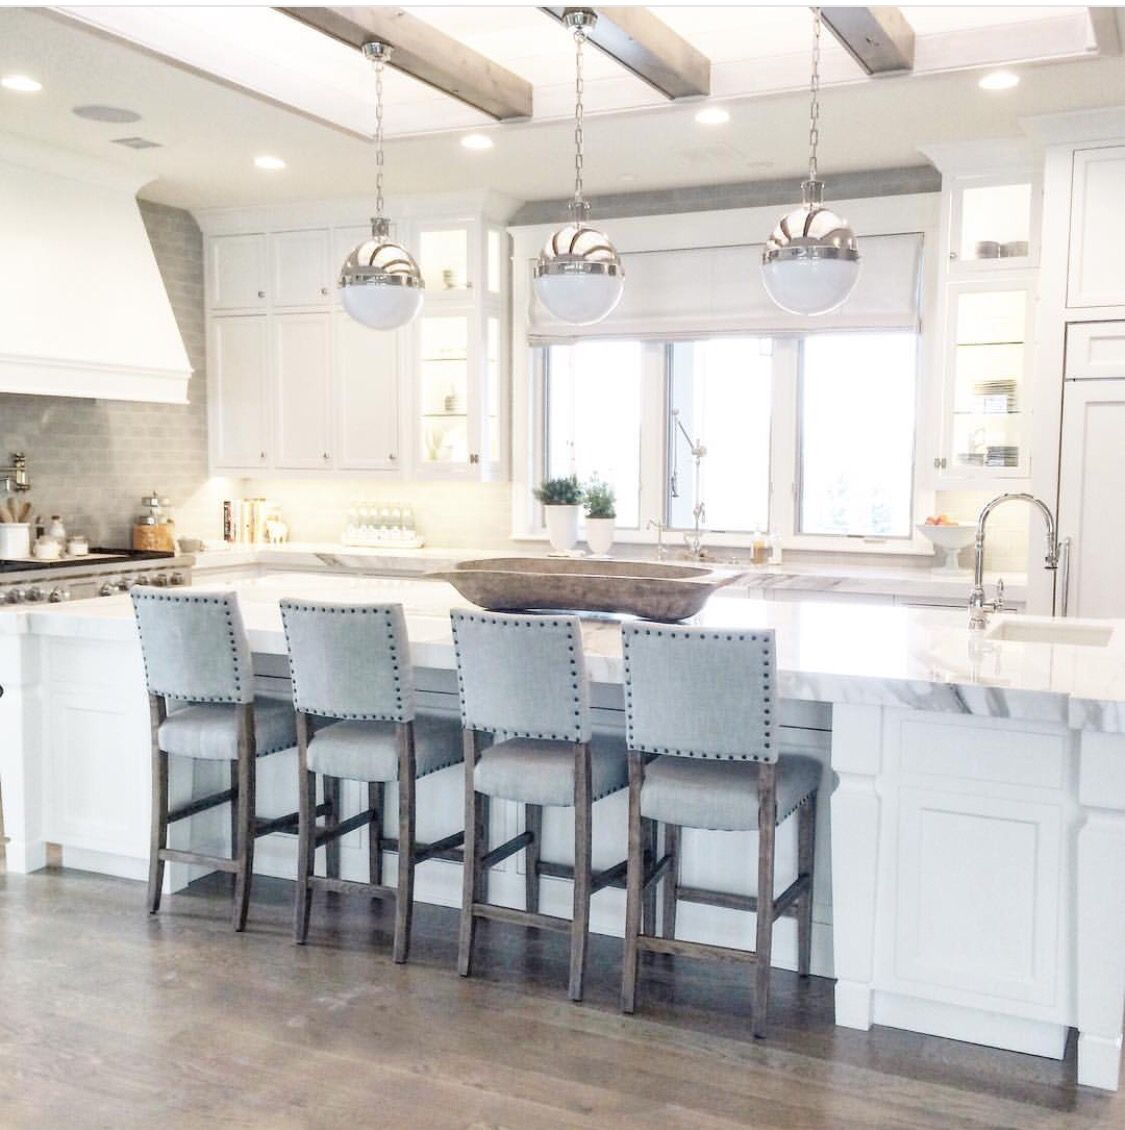 Stools Kitchen Islands Everything About This House Designs Island Chairs Kitchen